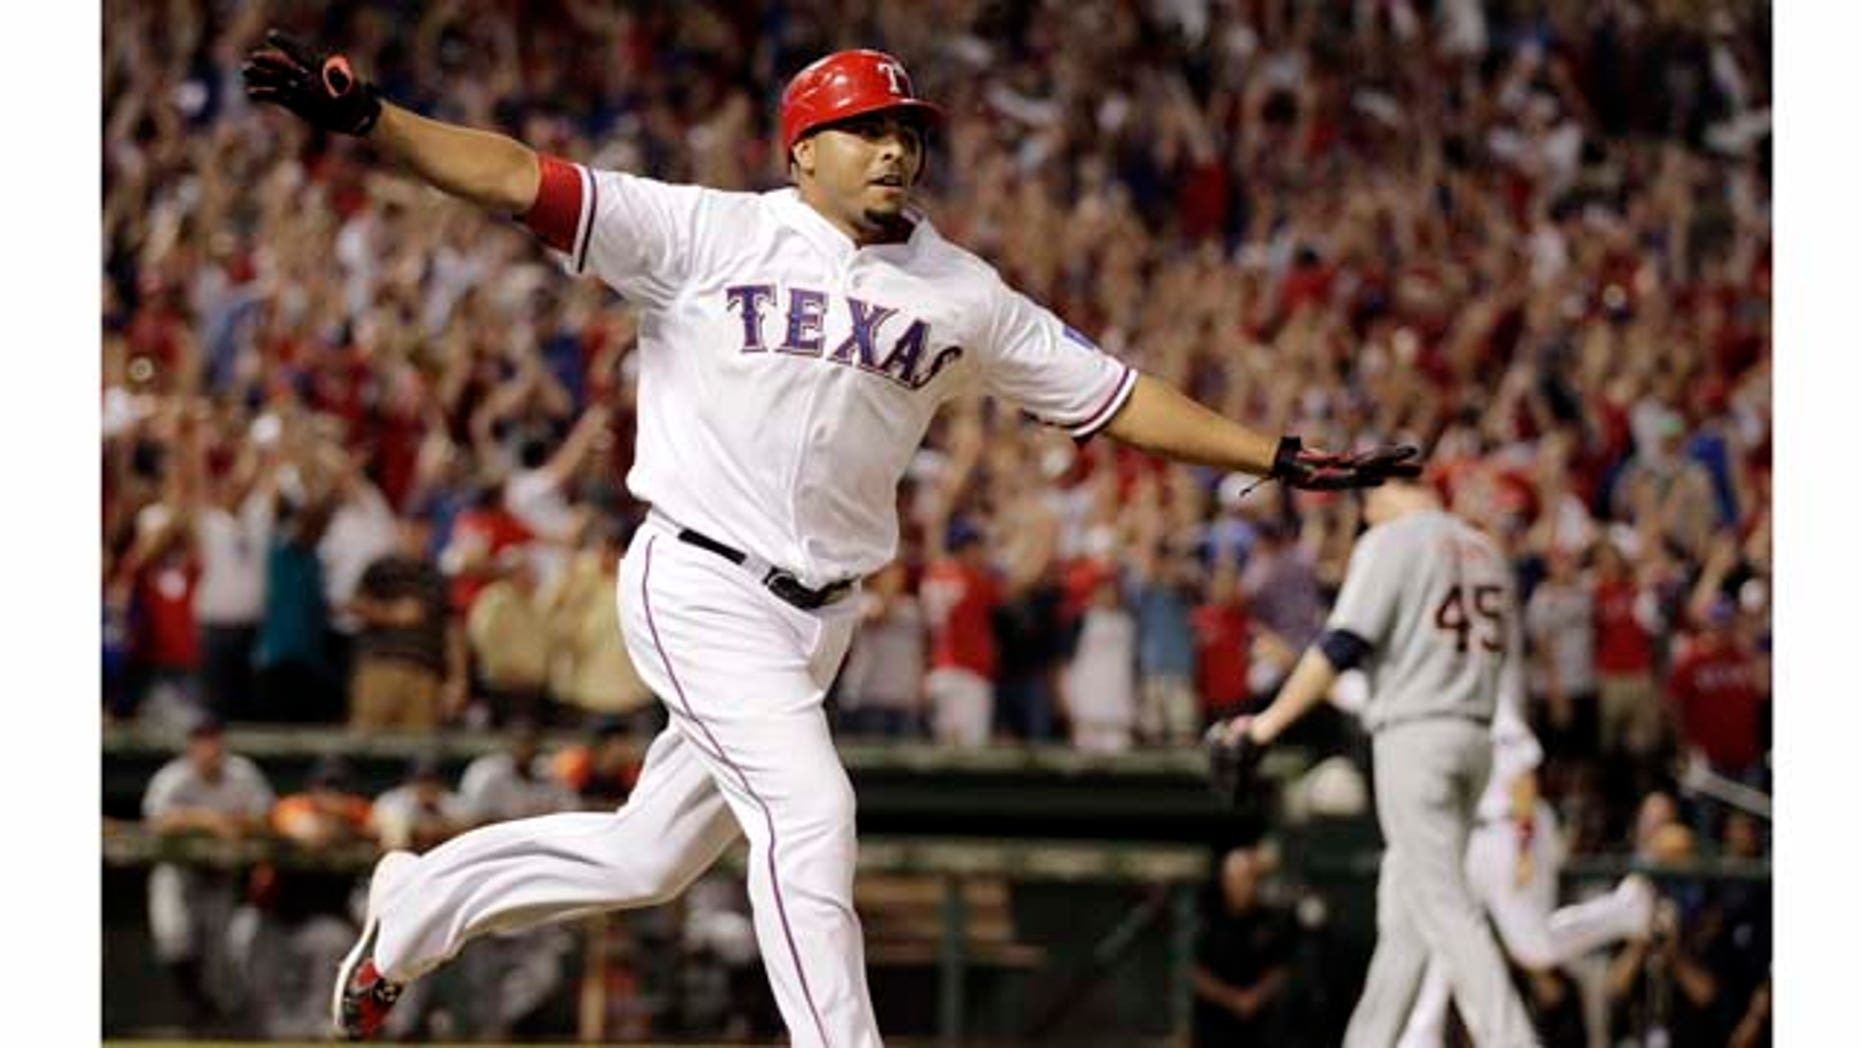 Texas Rangers' Nelson Cruz reacts after hitting a grand slam home run off of Detroit Tigers Ryan Perry, rear to win Game 2 of baseball's American League championship series 7-3,  Monday, Oct. 10, 2011, in Arlington, Texas. (AP Photo/Charlie Riedel)